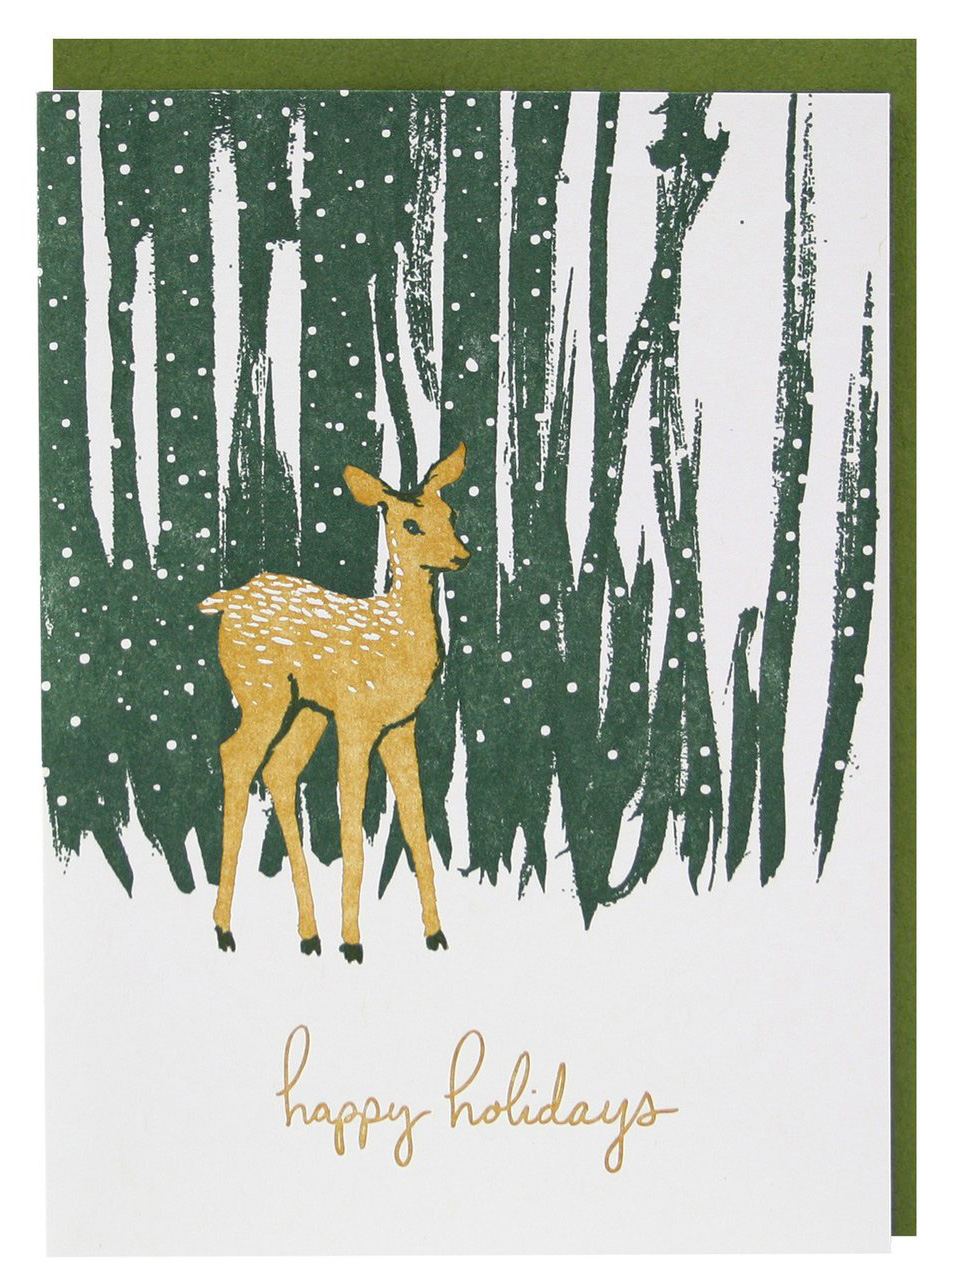 Deer-in-Forest-Holiday-Card_1280x1280.jpg